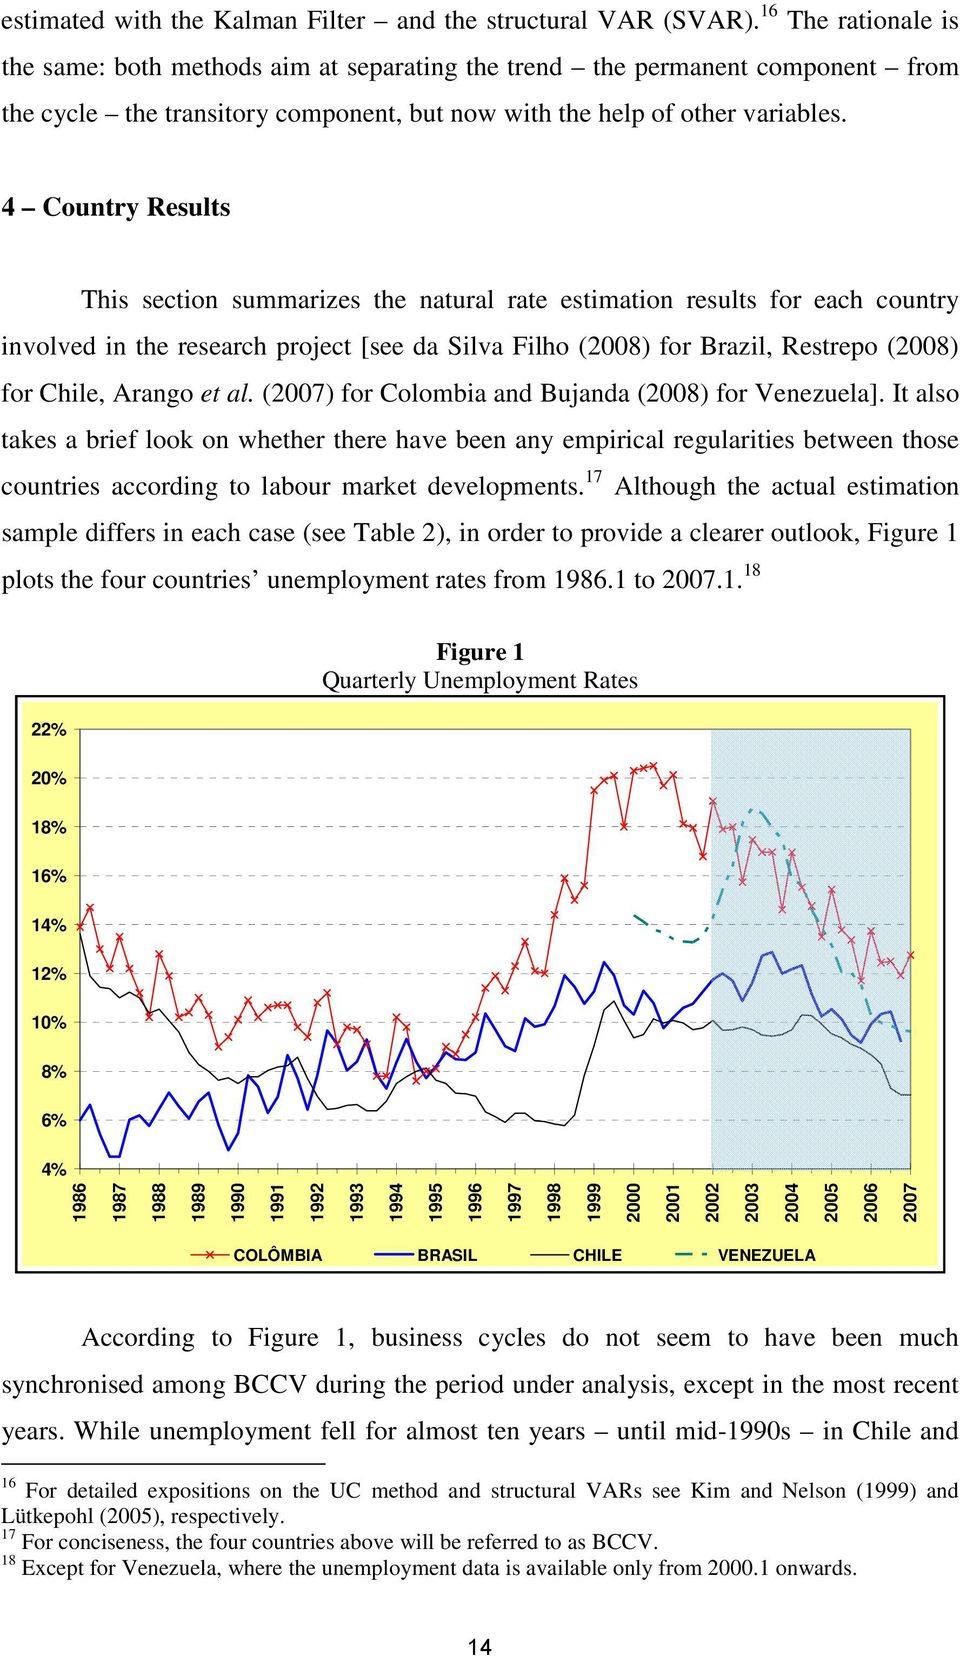 4 Country Results This section summarizes the natural rate estimation results for each country involved in the research project [see da Silva Filho (2008) for Brazil, Restrepo (2008) for Chile,